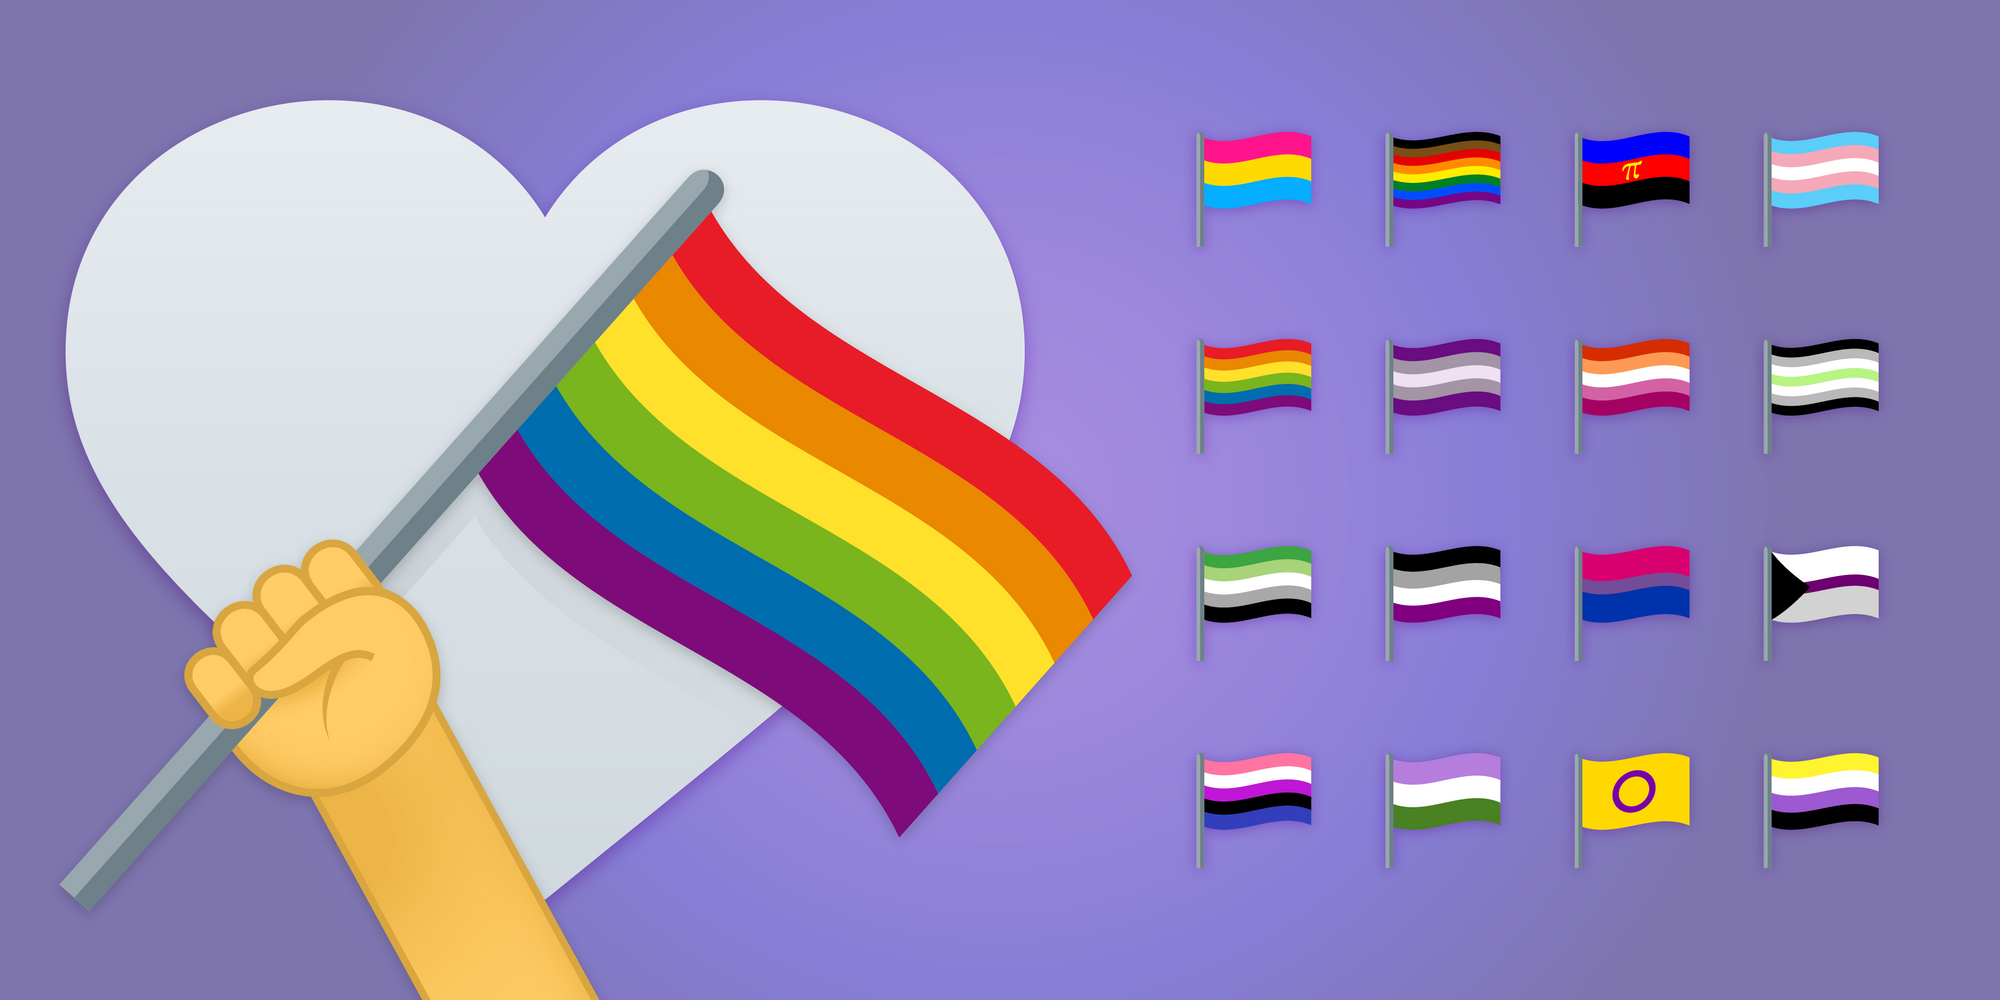 World's First LGBT+ Emoji Flags for #Pridemonth